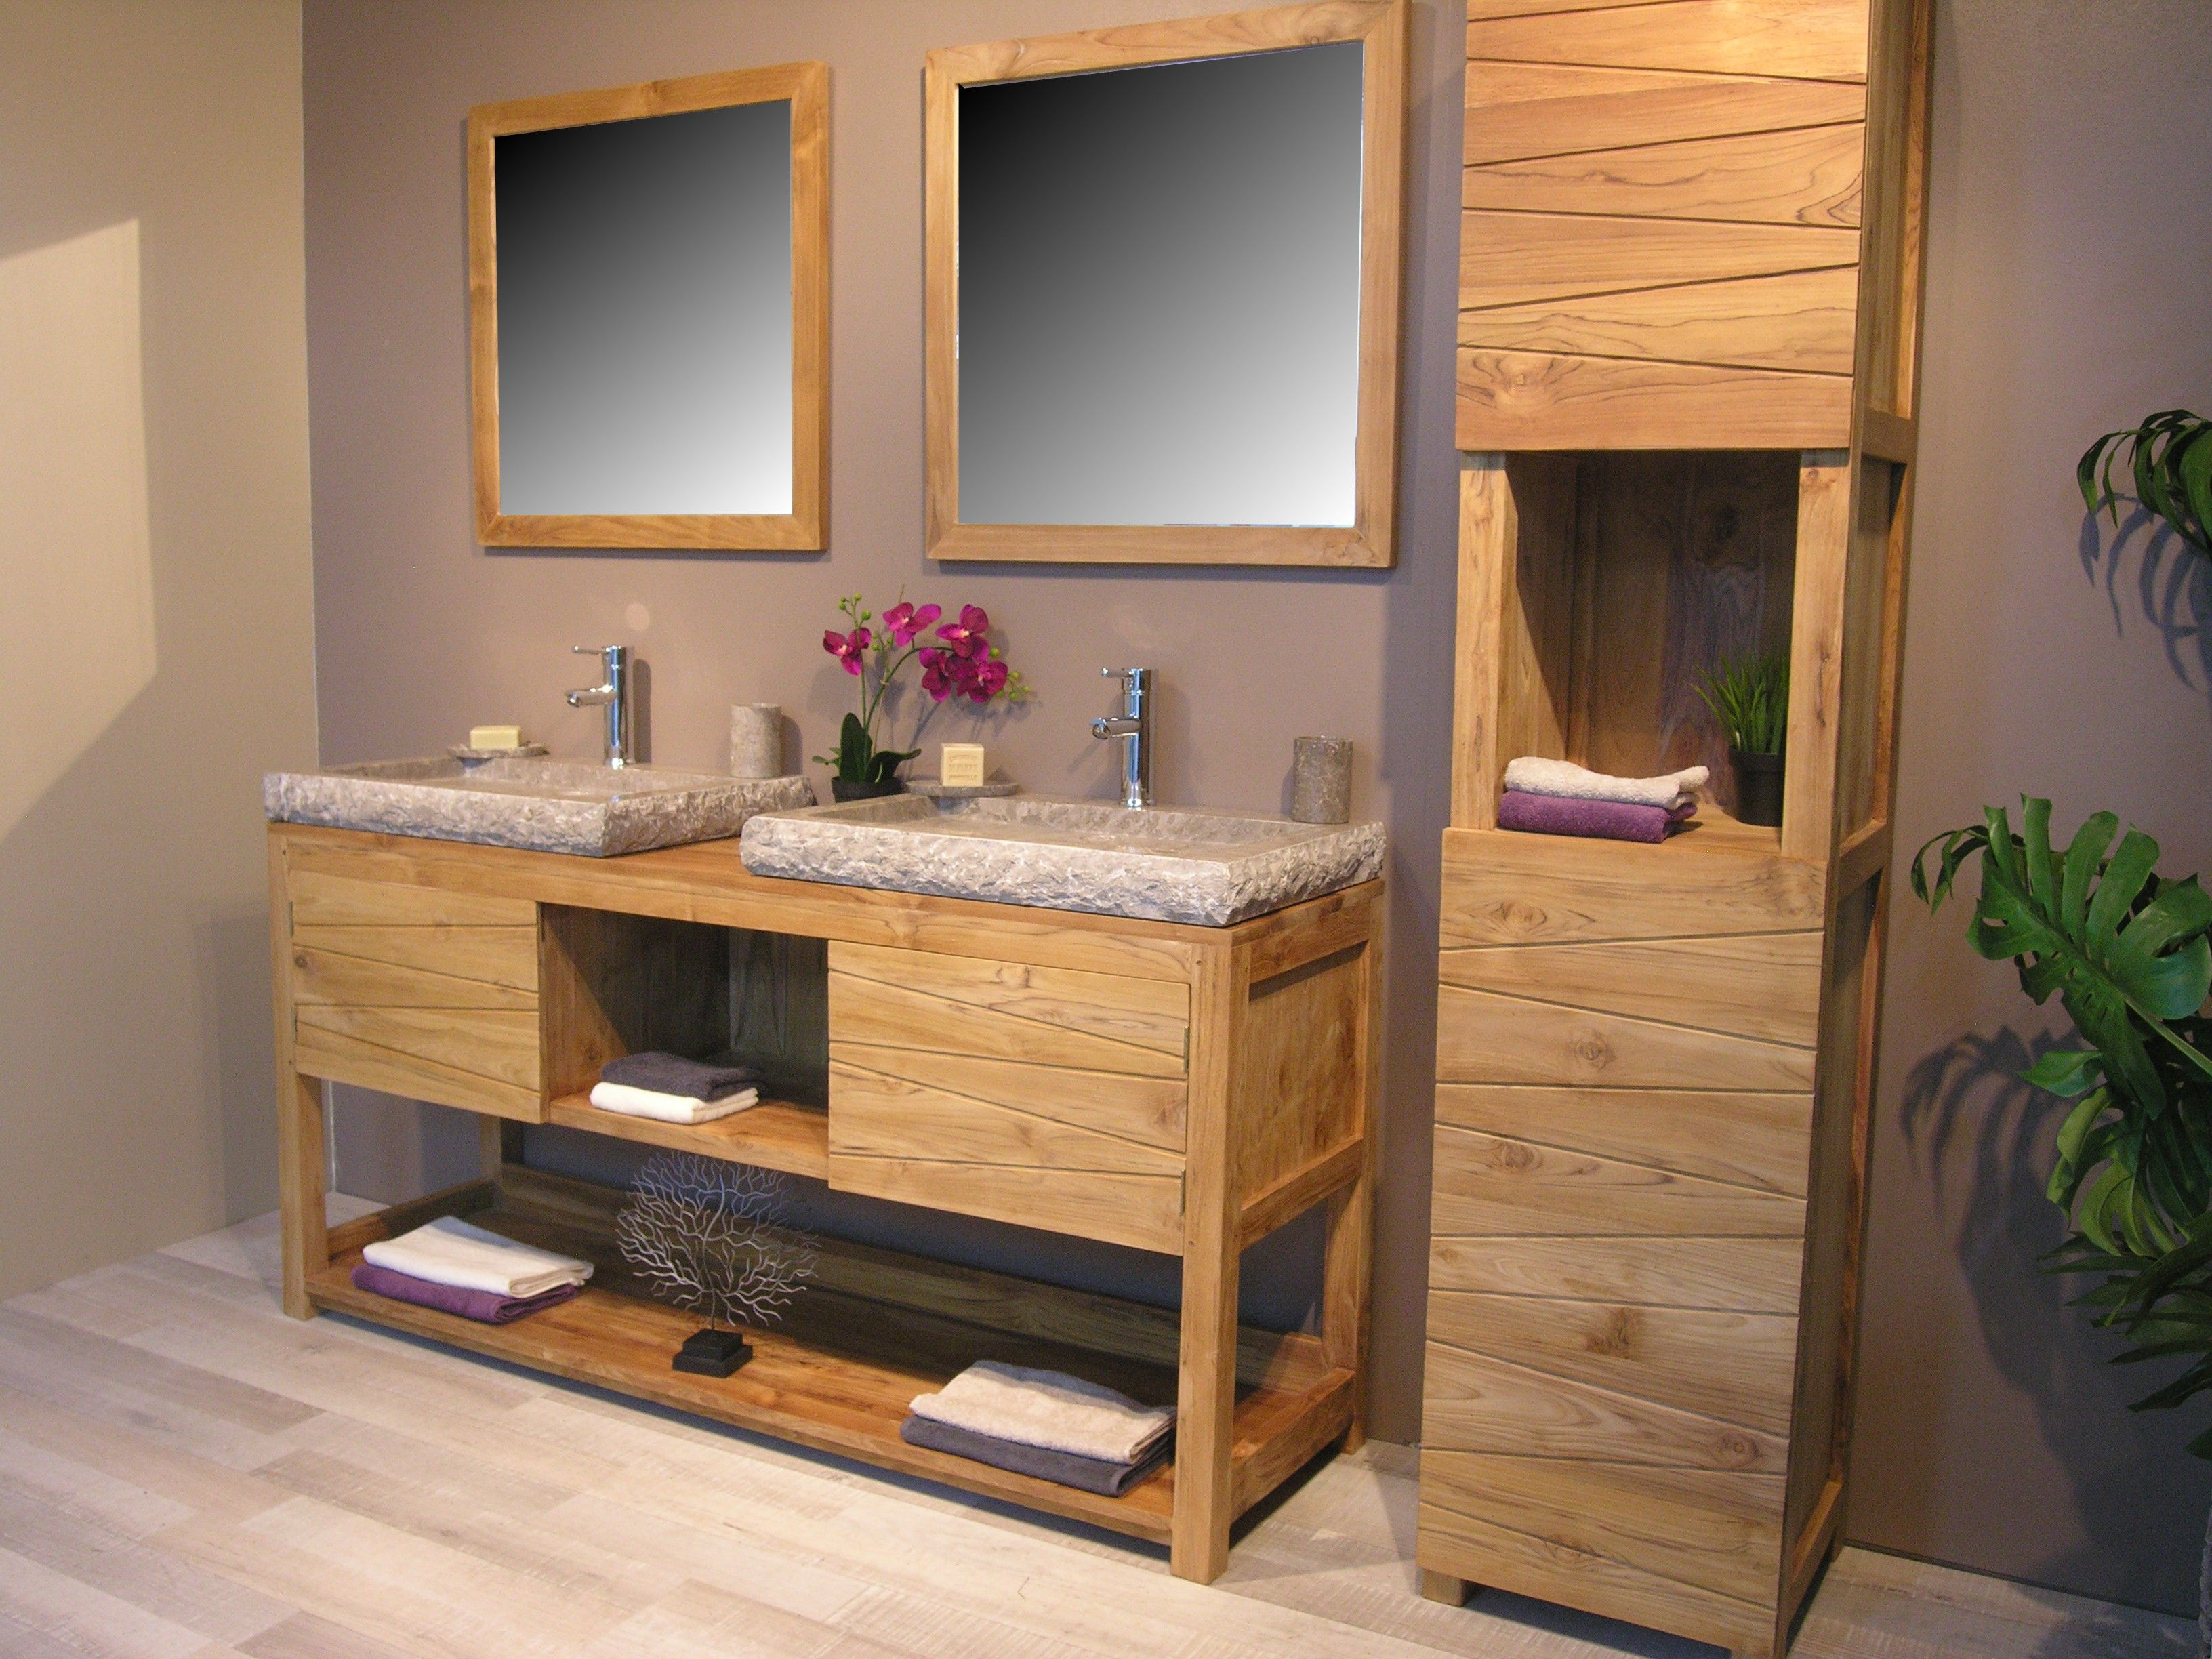 Comment Bien Choisir Son Meuble De Salle De Bain Armoire Repurpose Bathrooms Remodel Diy Bathroom Decor